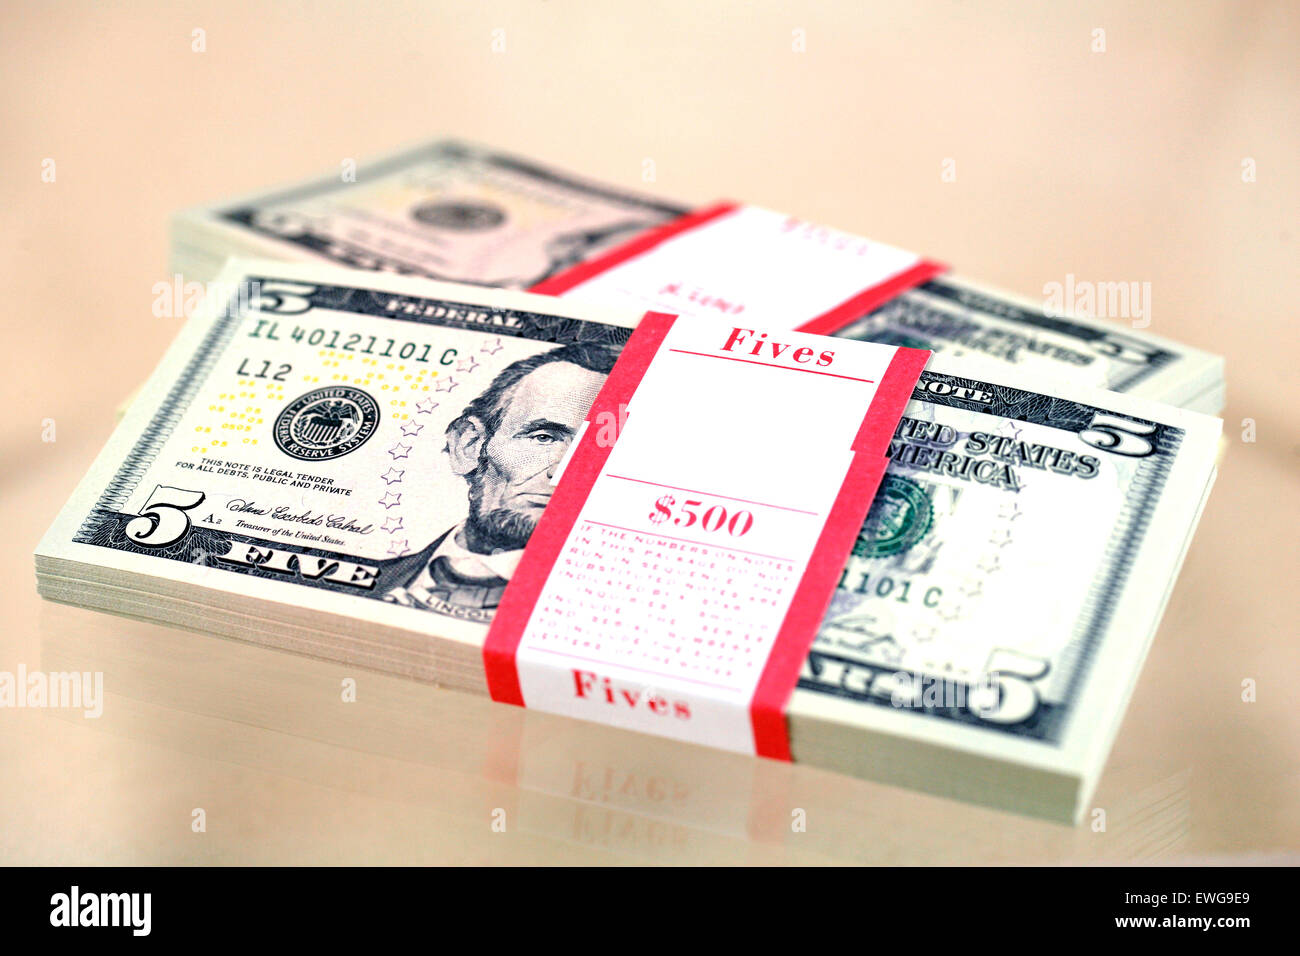 500 in fives wrapped and ready to go. - Stock Image